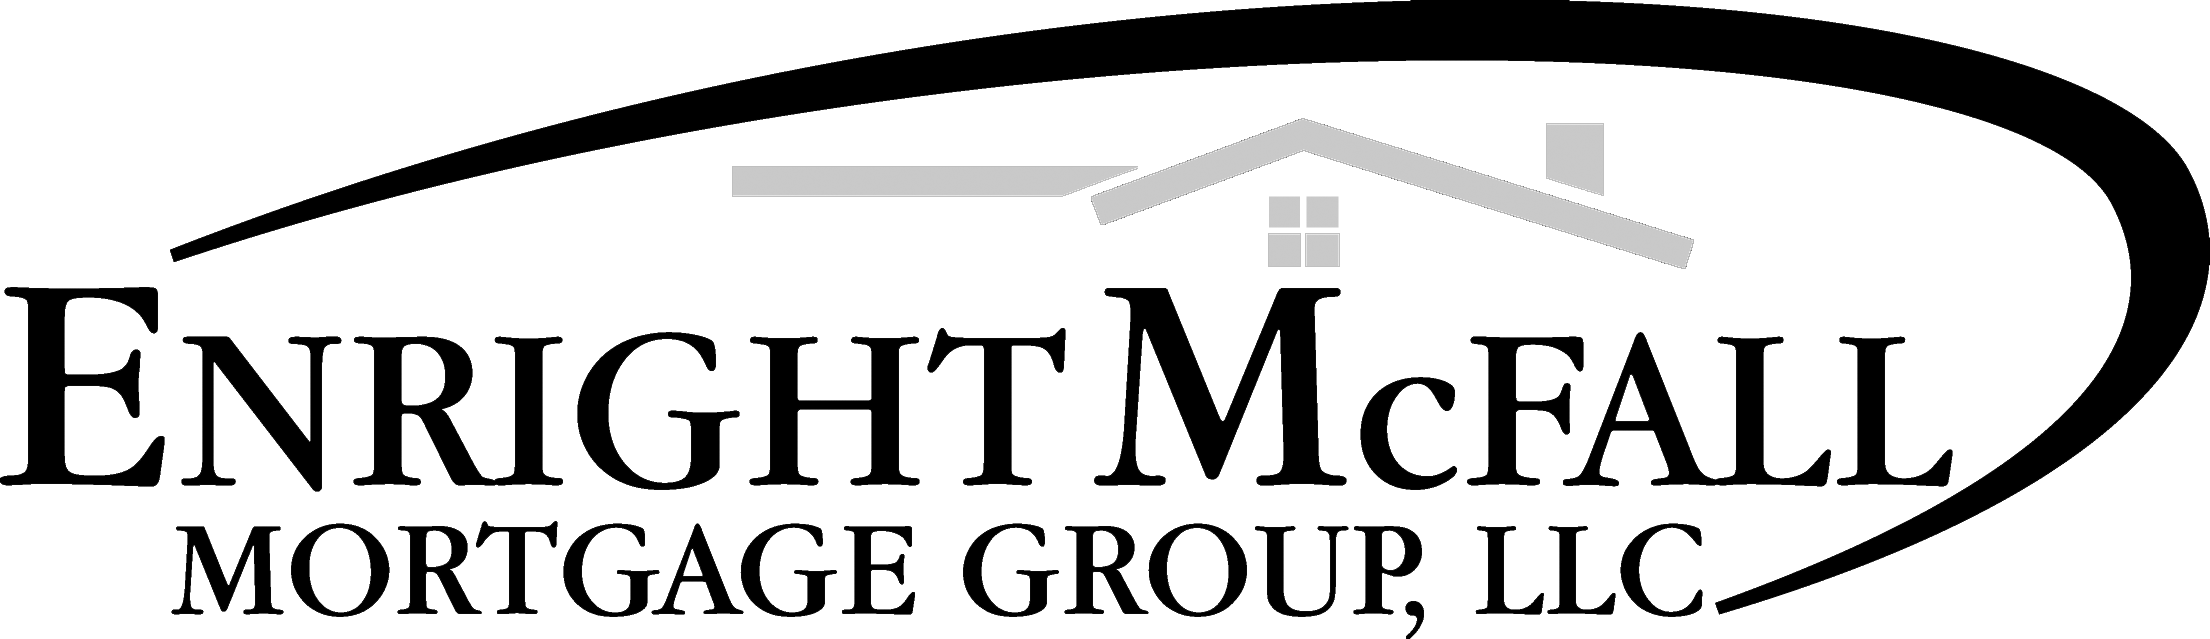 Enright McFall Mortgage Group, LLC logo